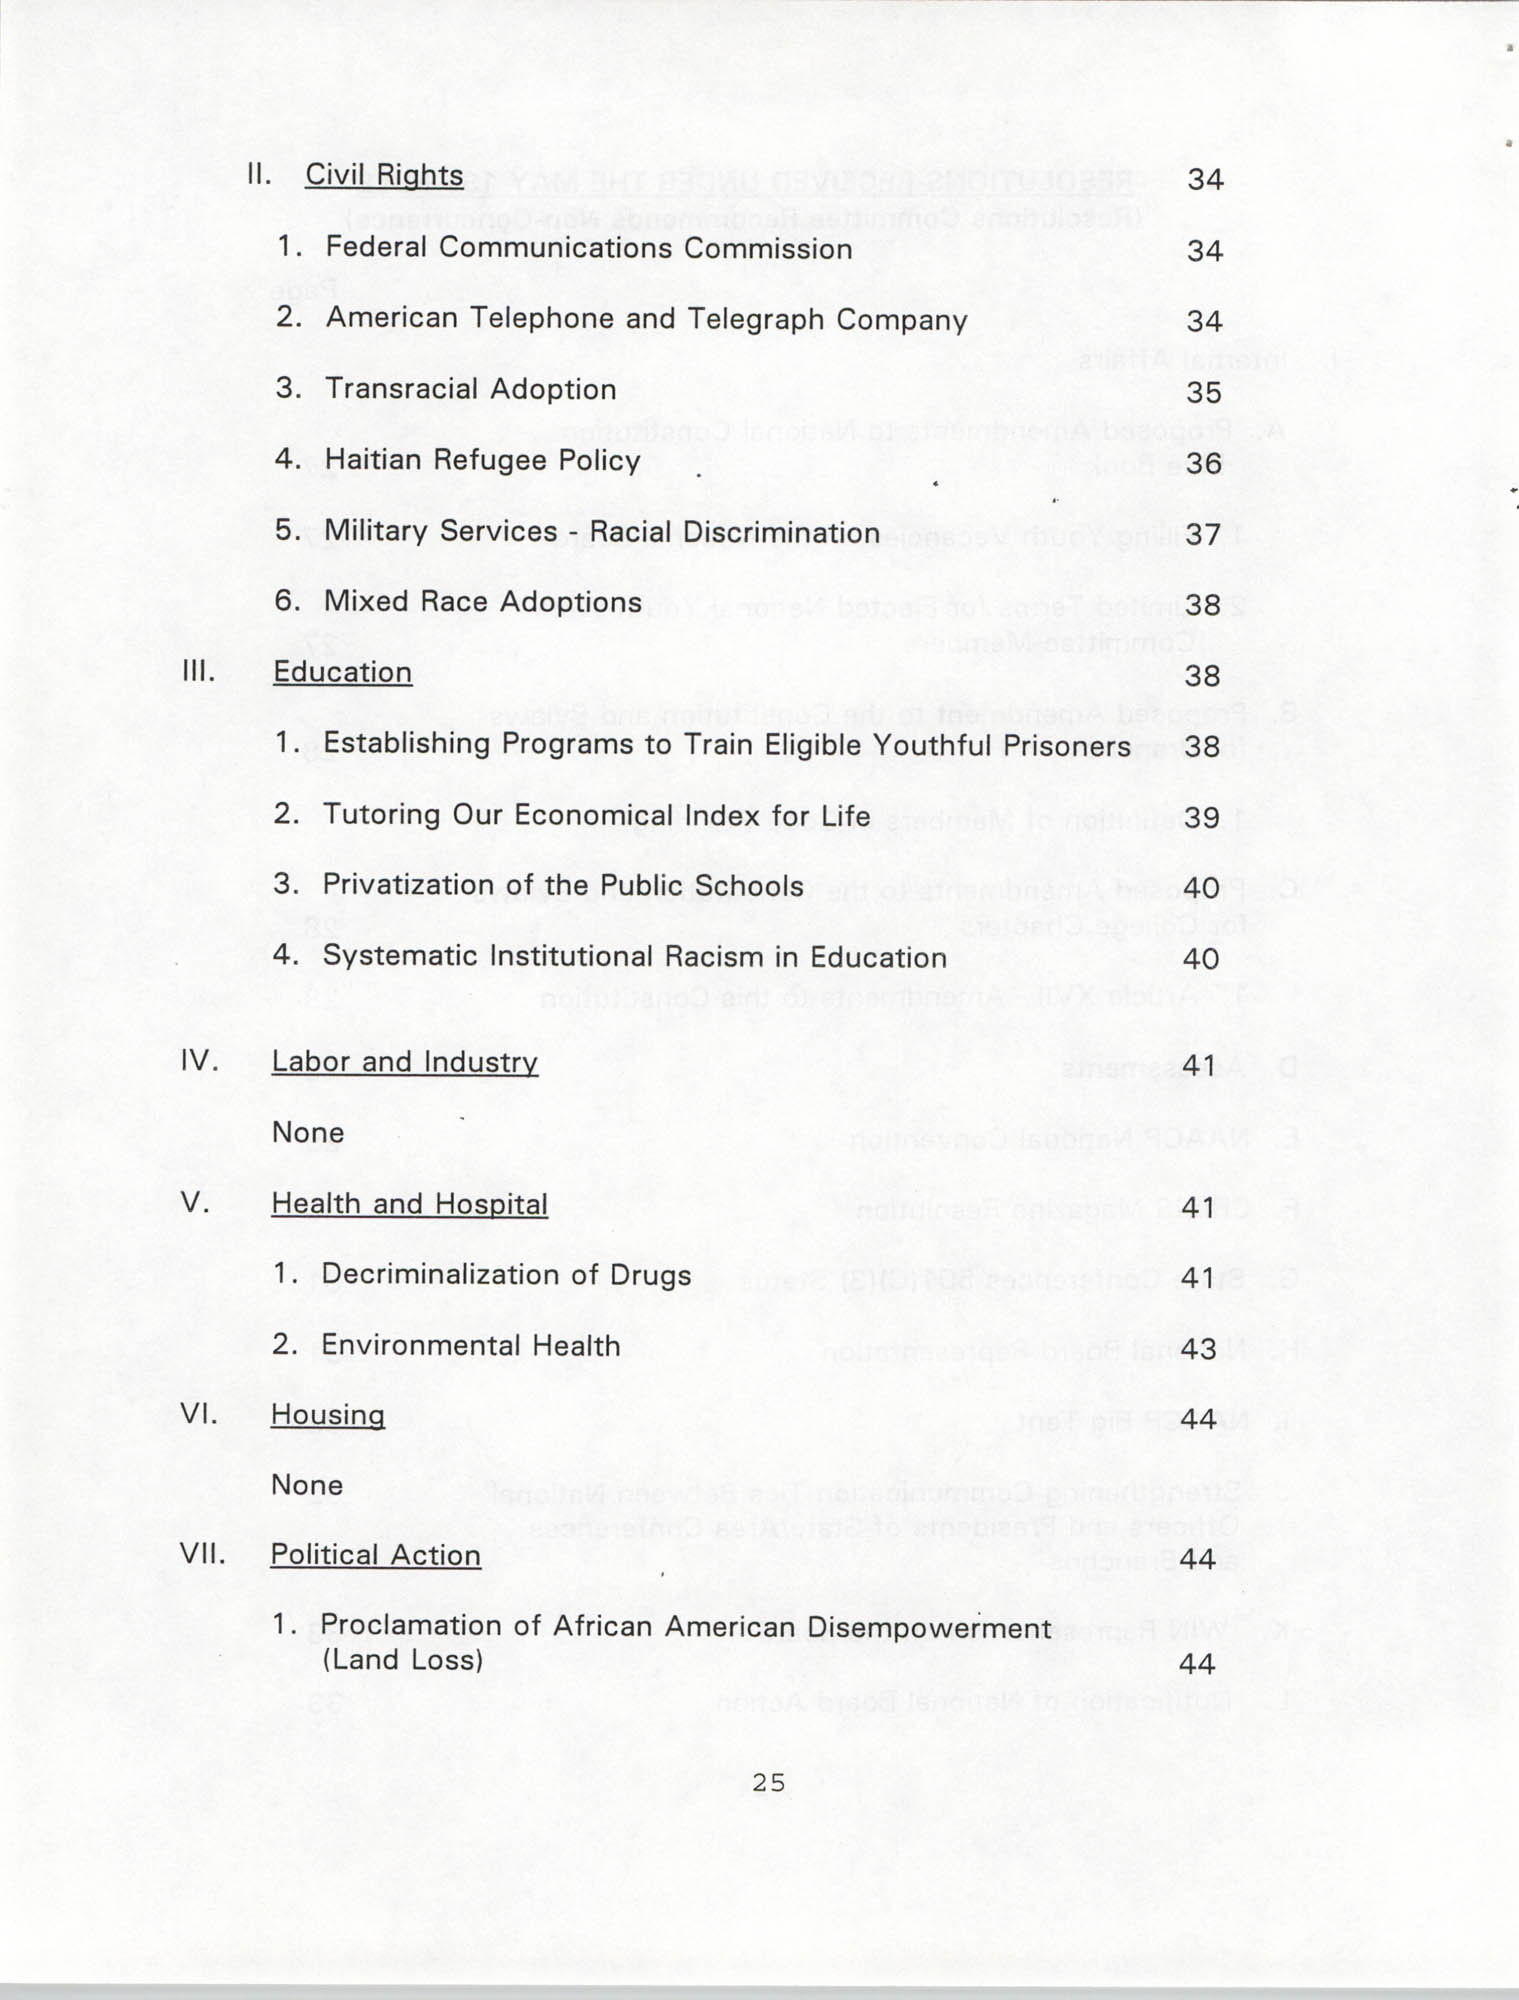 Resolutions Submitted Under Article X, Section 2 of the Constitution of the NAACP, 1994, Page 25